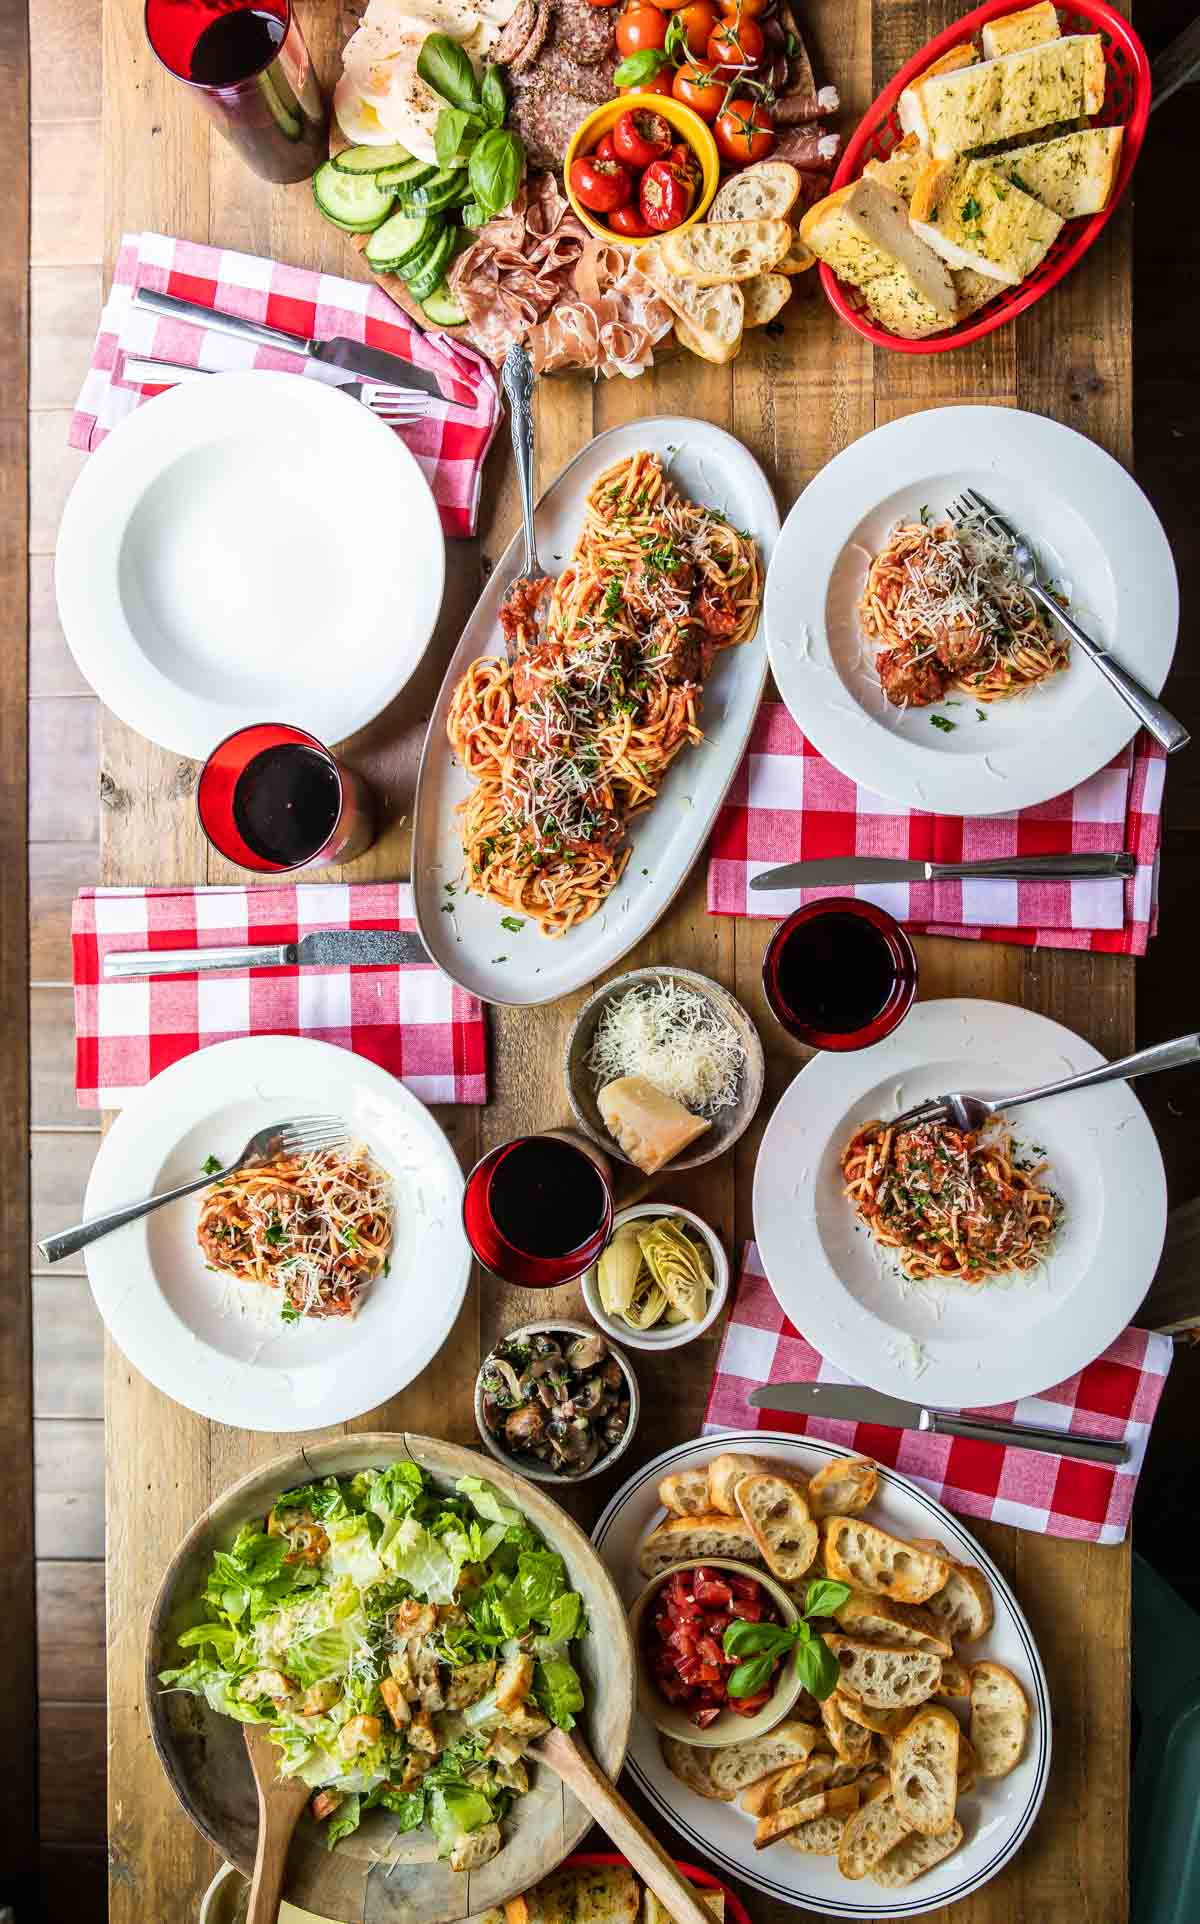 A spread of Italian food on a wooden table.